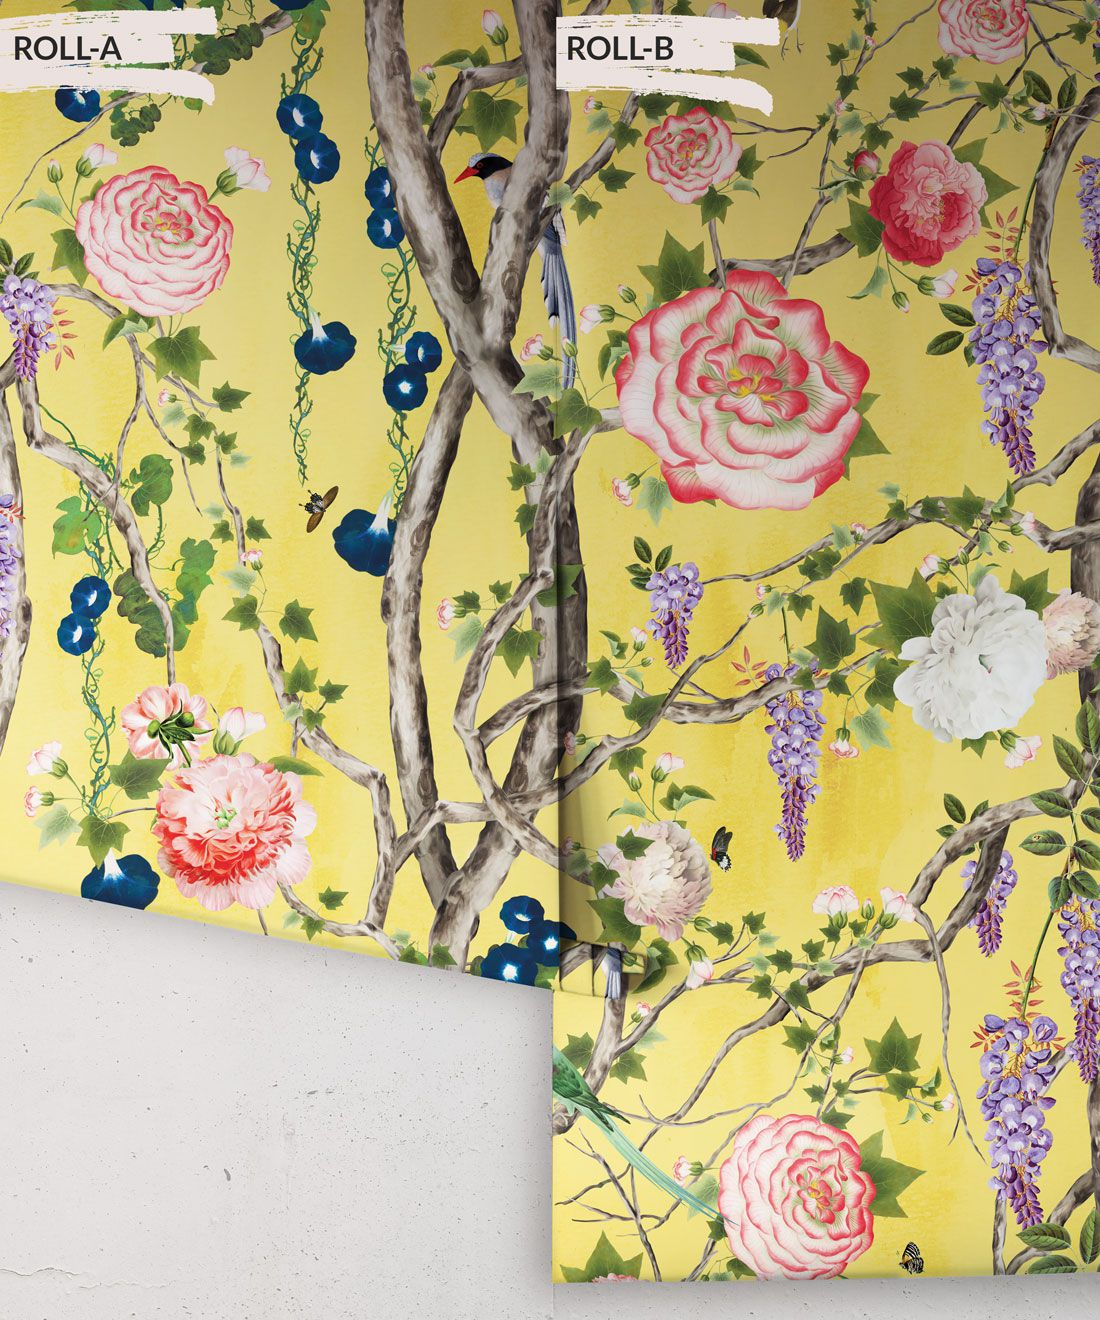 Empress Wallpaper • Romantic Wallpaper • Floral Wallpaper • Chinoiserie Wallpaper • Yellow color wallpaper rolls • Honey